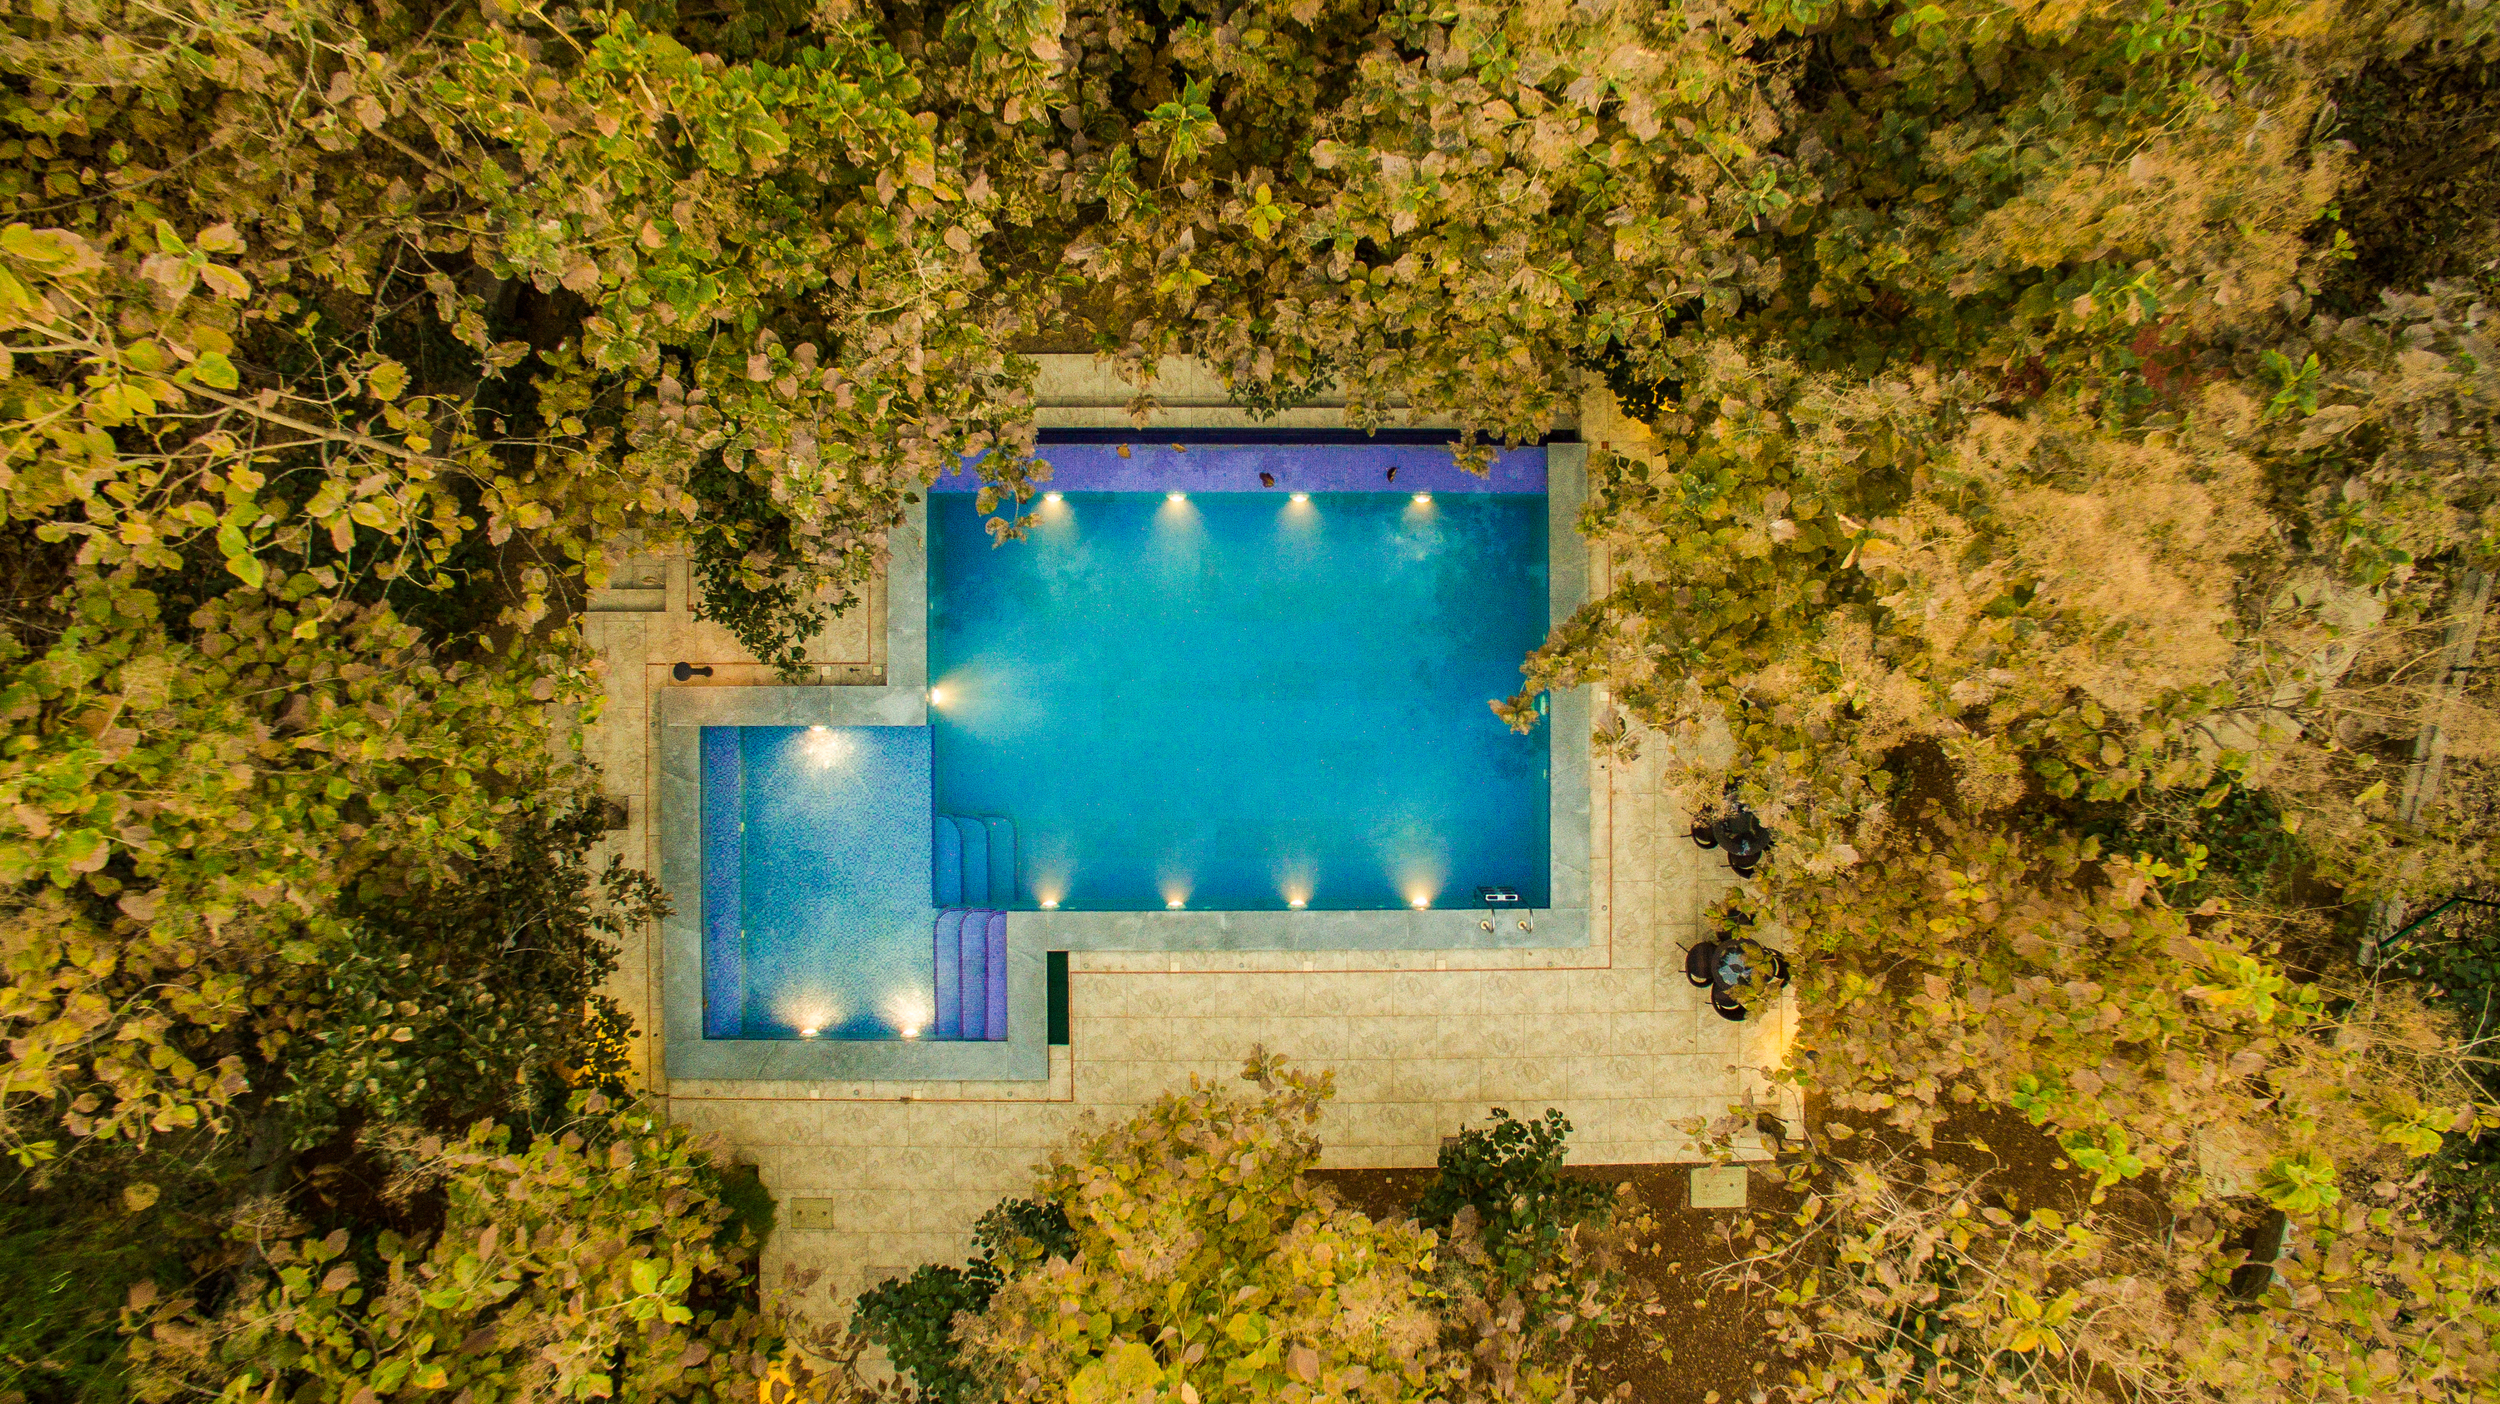 The pool, surrounded by the forest, with a secure fencing around the deck and the swimming area